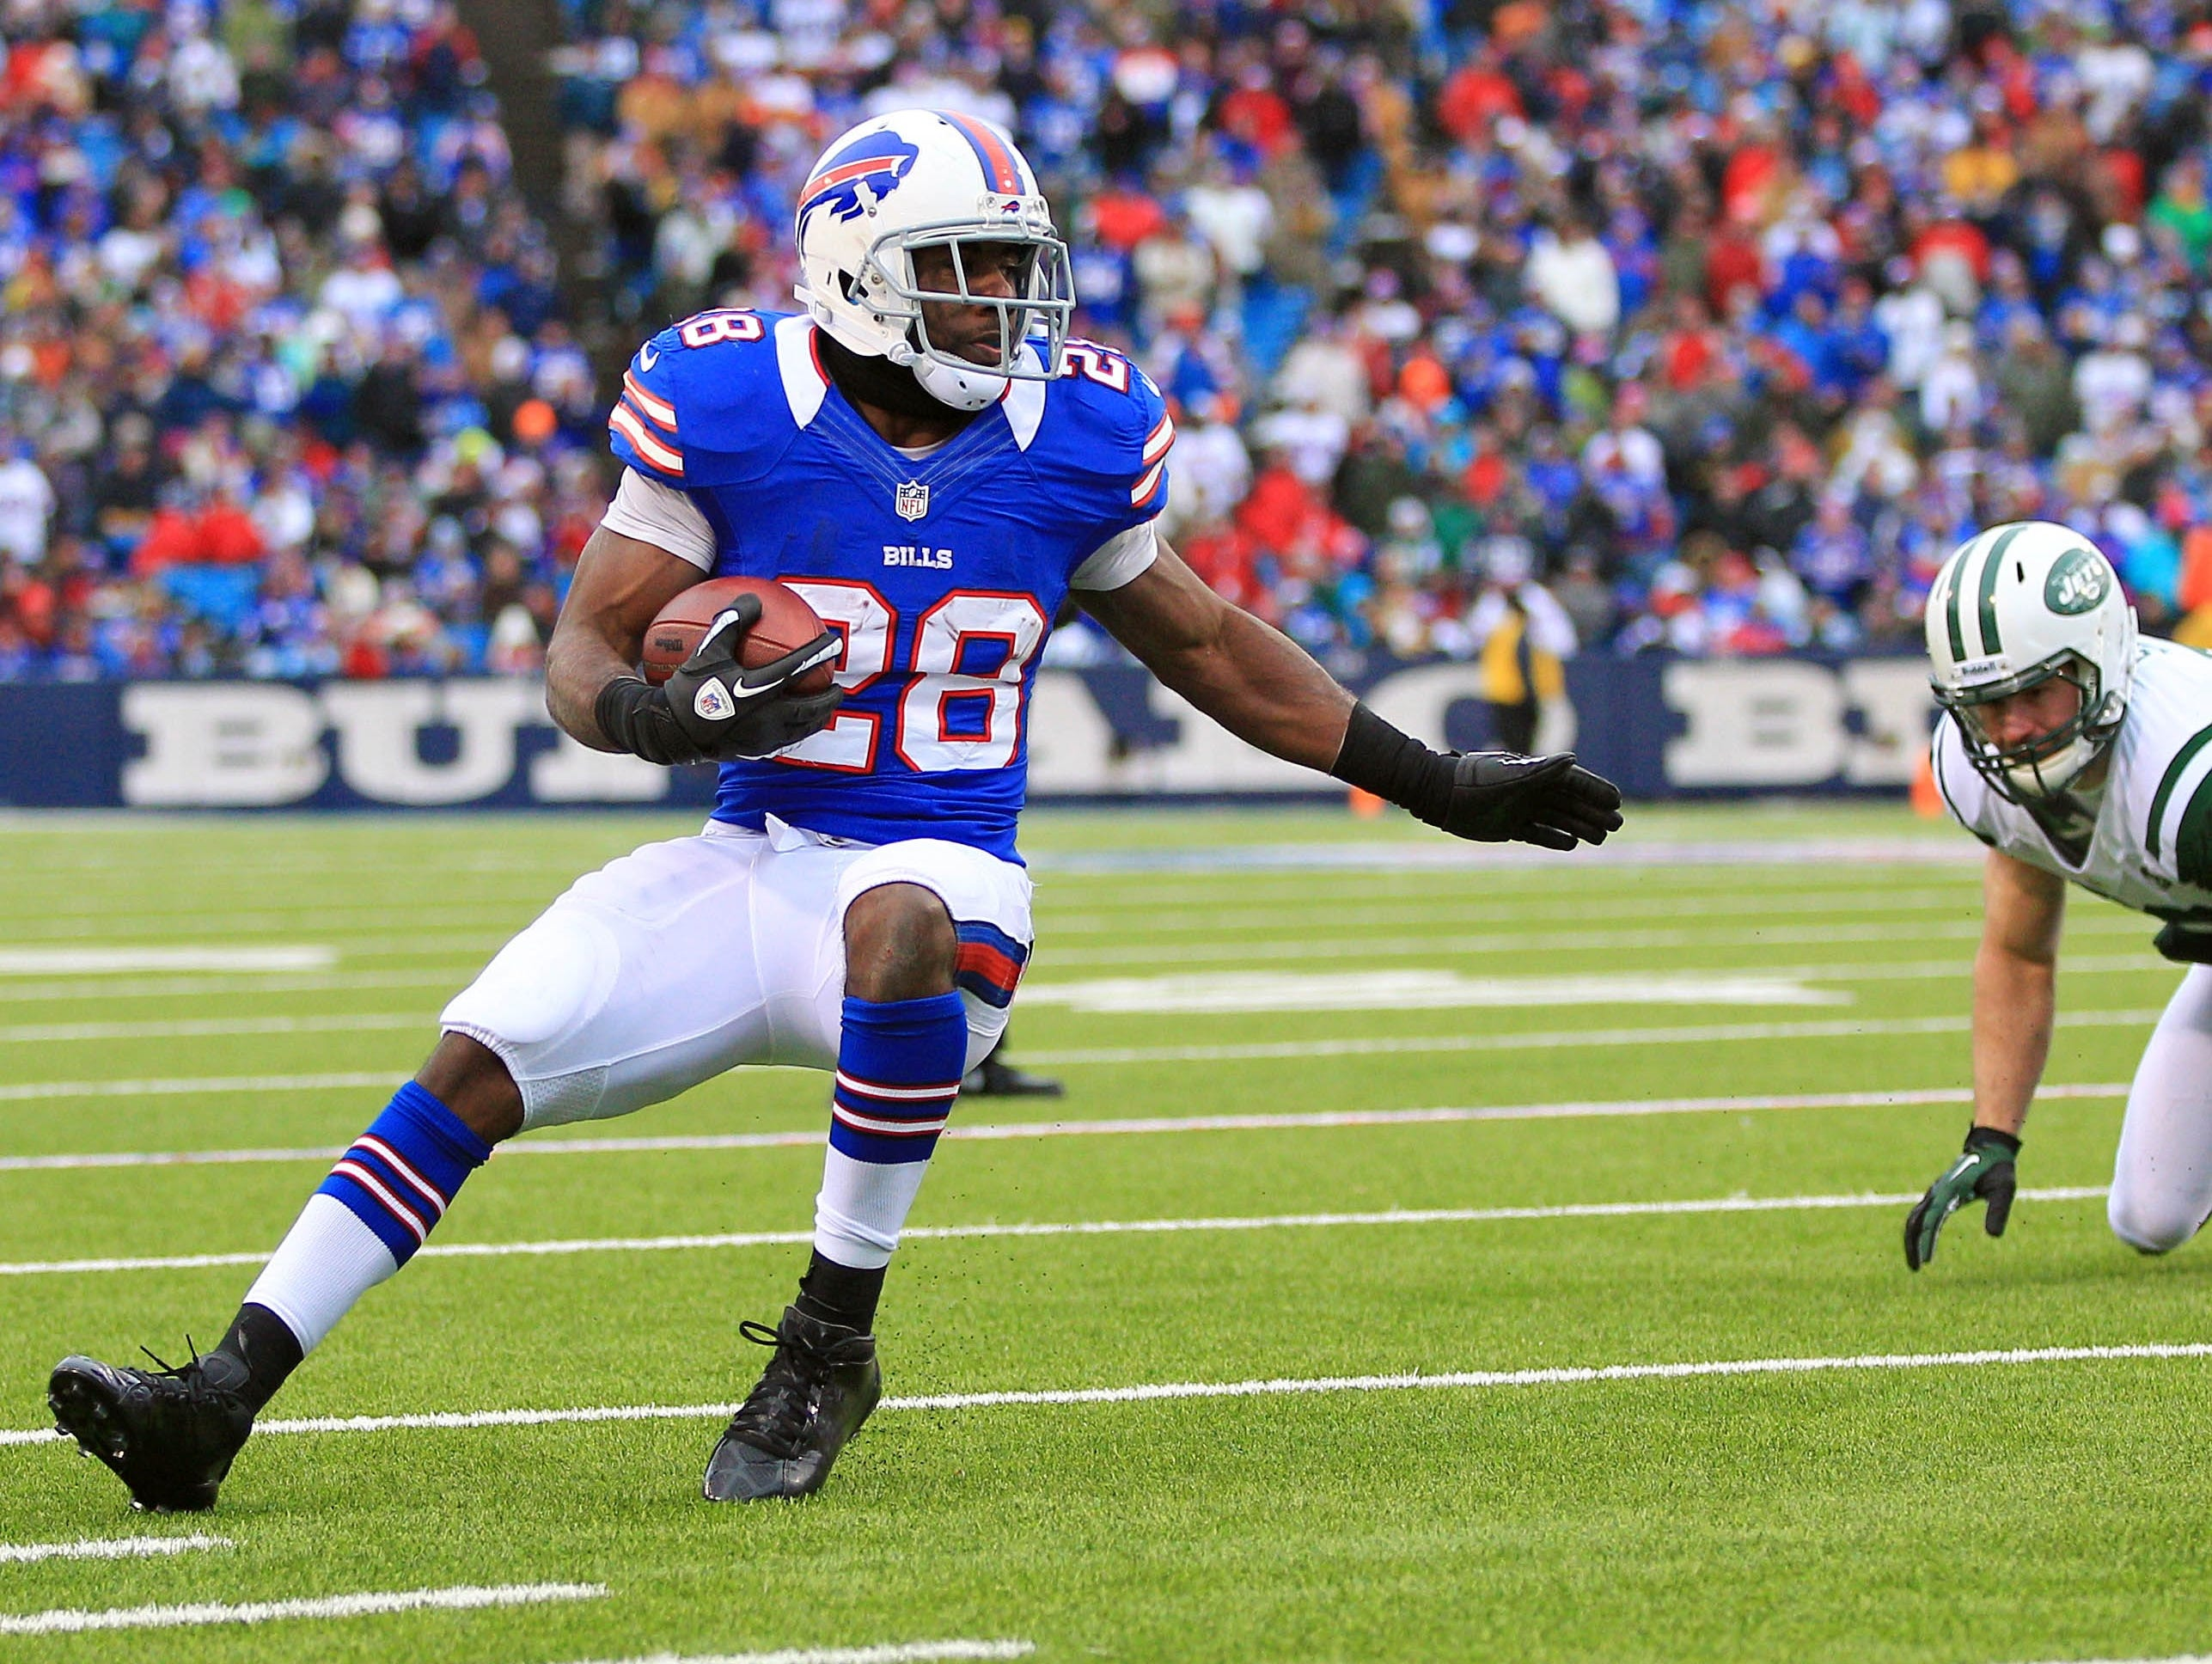 Dolphins' Knownshon Moreno representative of new-age NFL RB ...